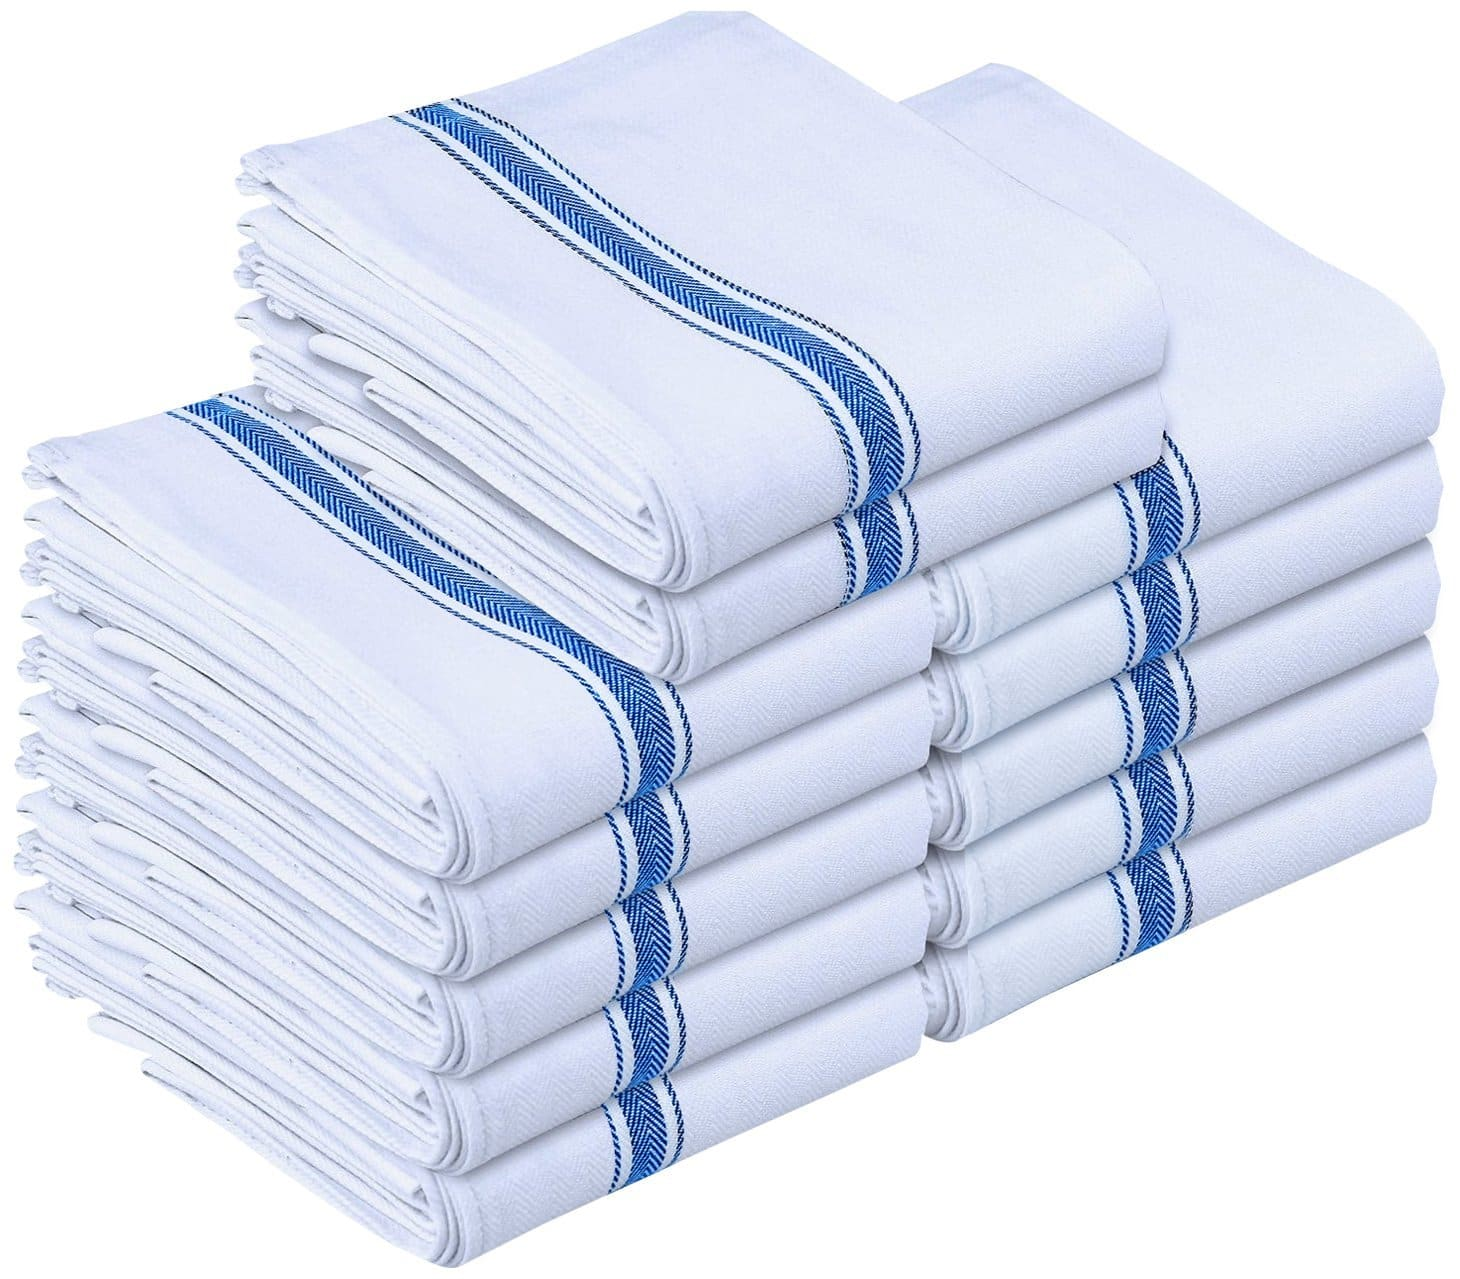 Kitchen Towels Dish Cloth (12 Pack) Machine Washable Cotton White $10.99 @Amazon